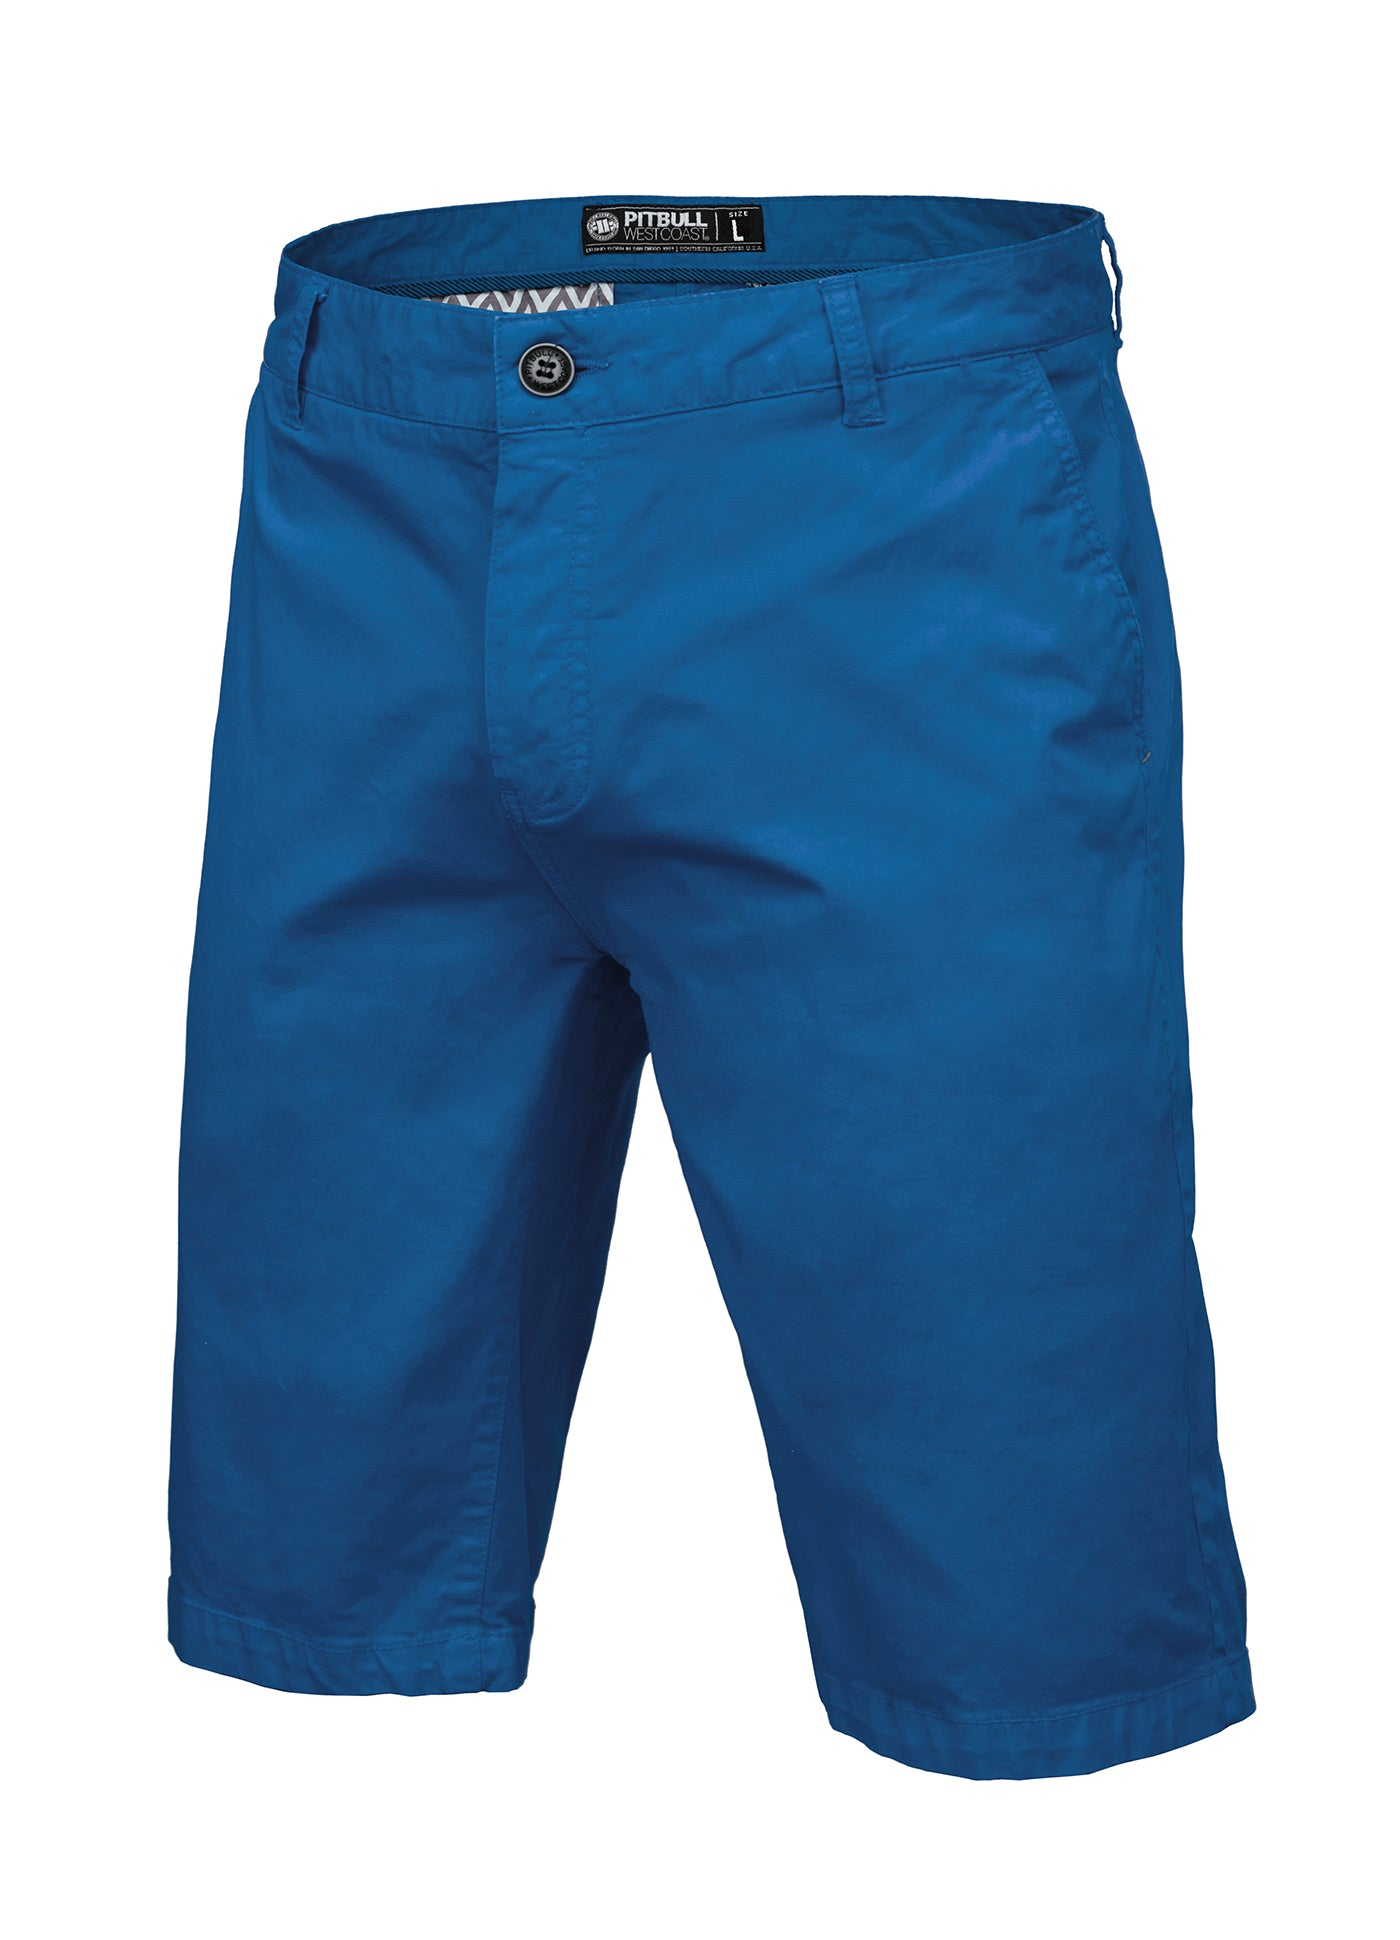 Shorts VERMEL Royal Blue - pitbullwestcoast